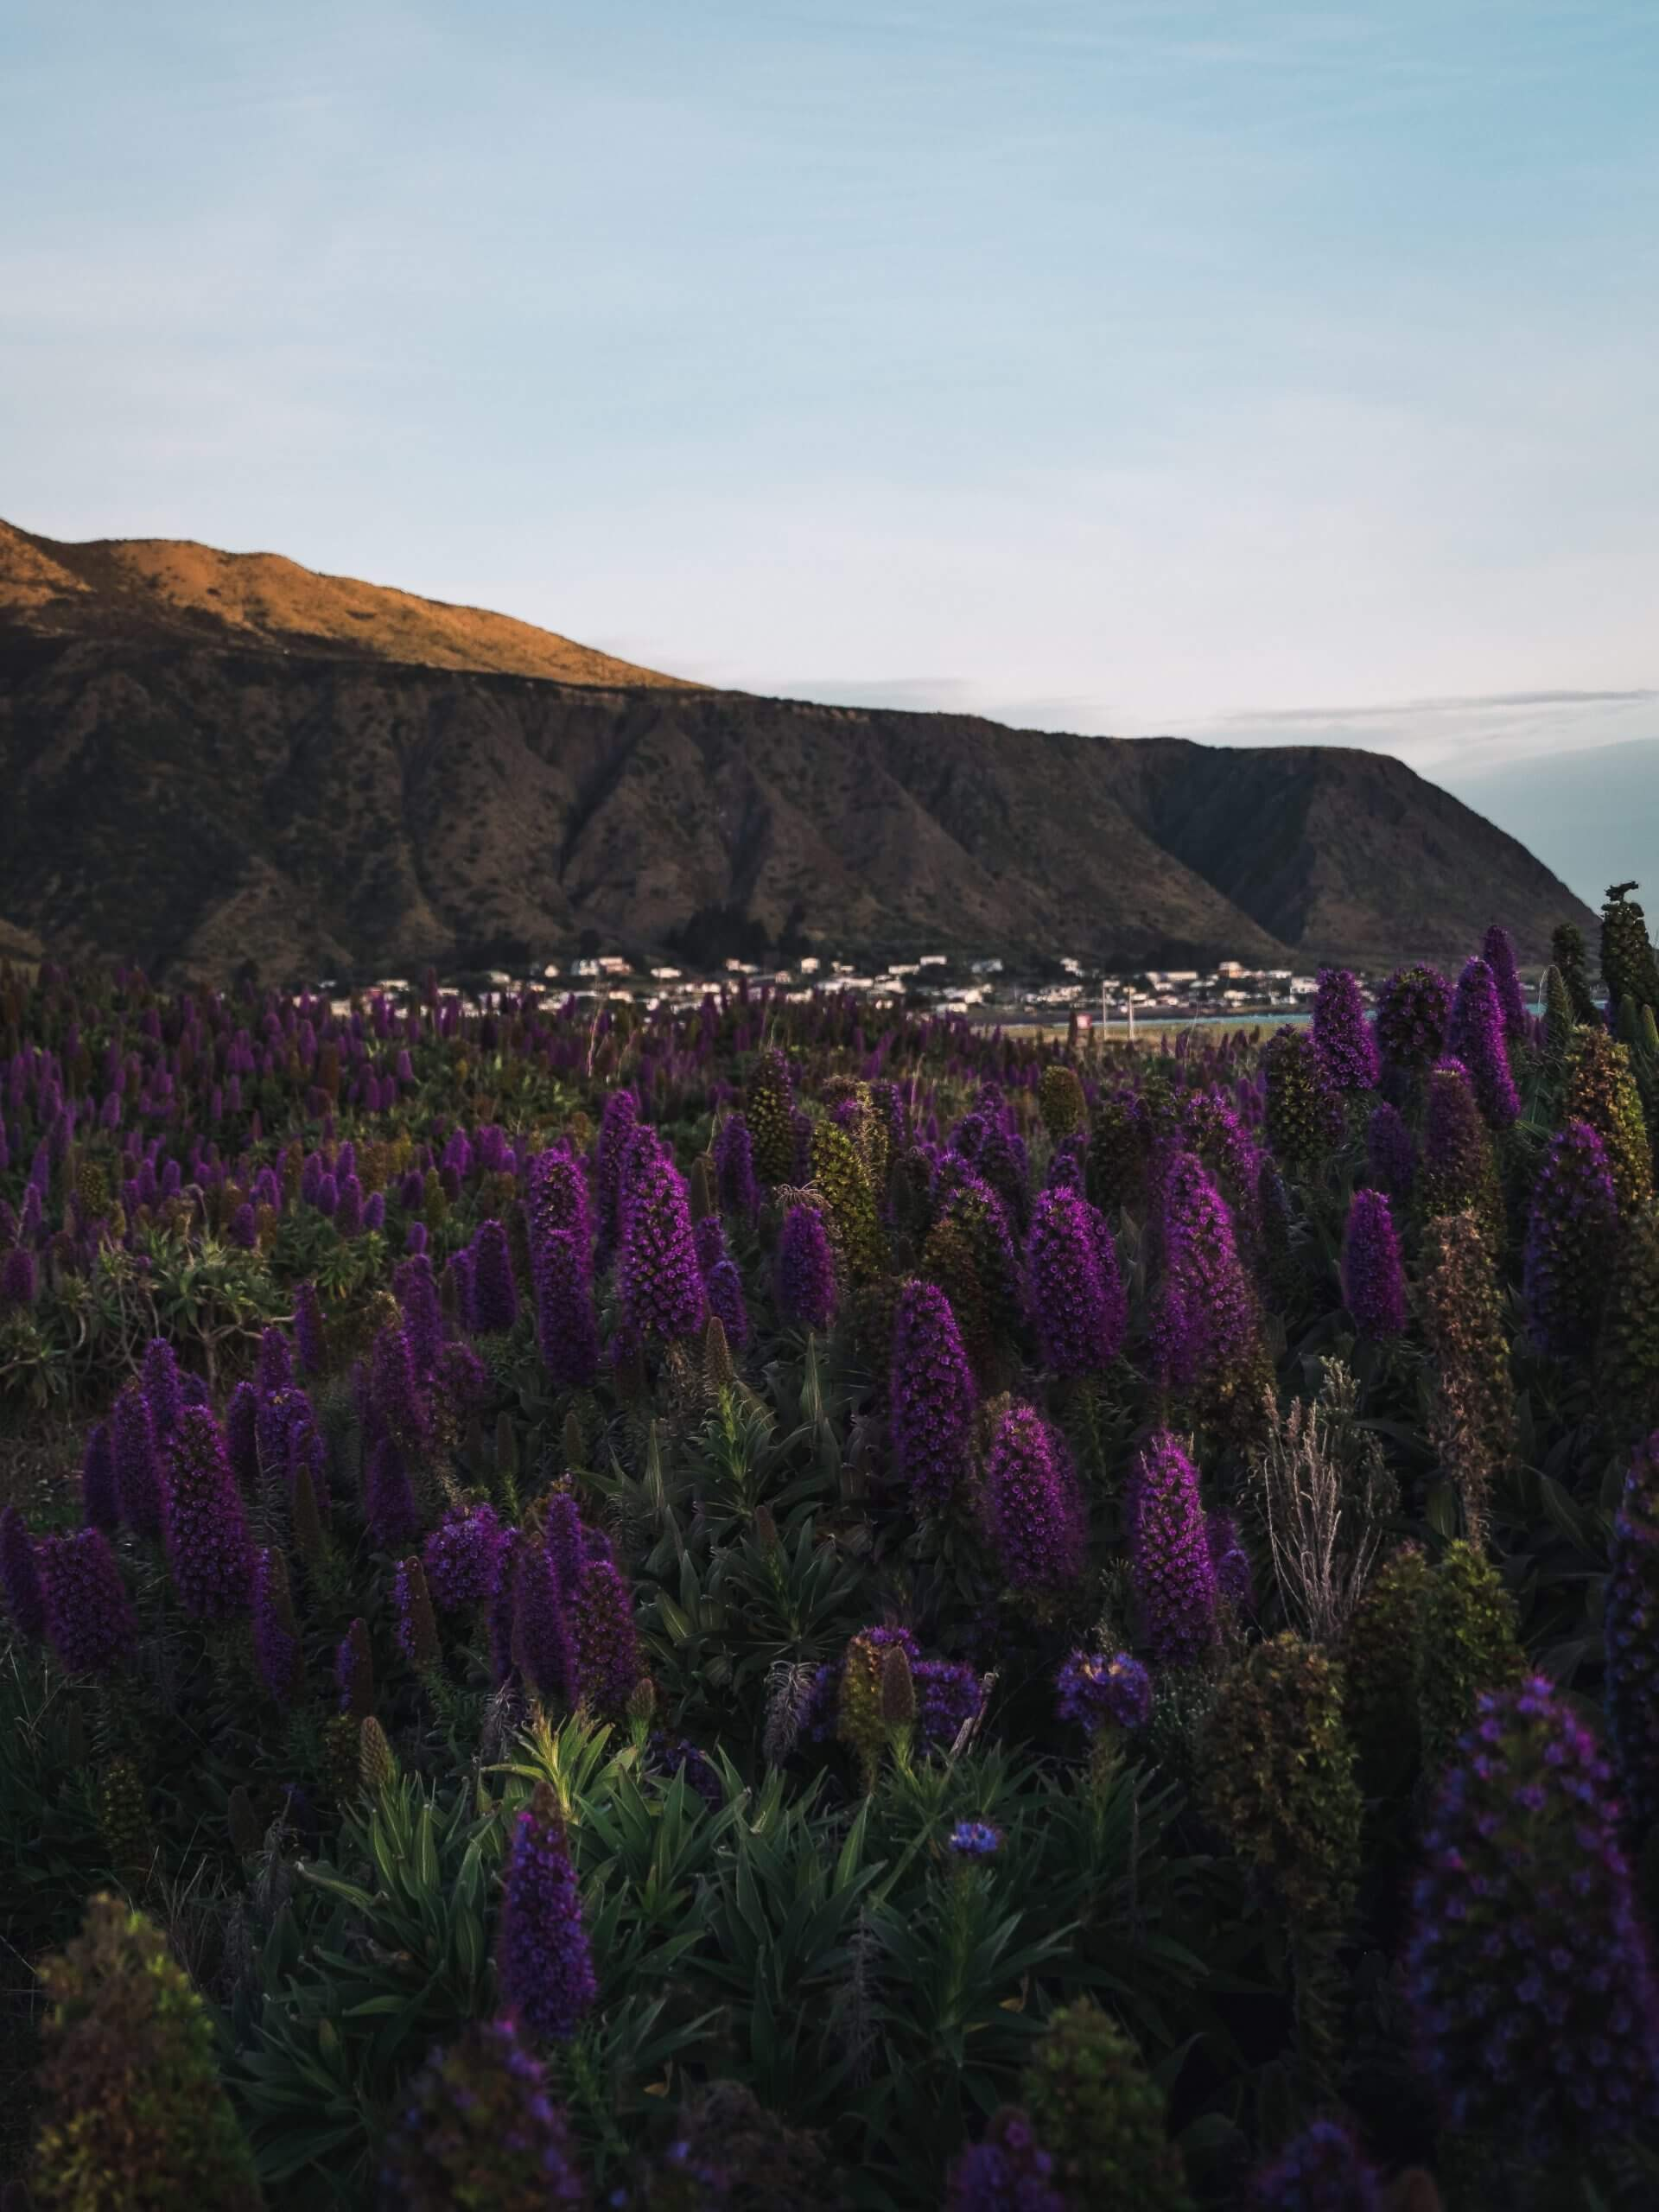 Lupines starting to bloom during September in New Zealand